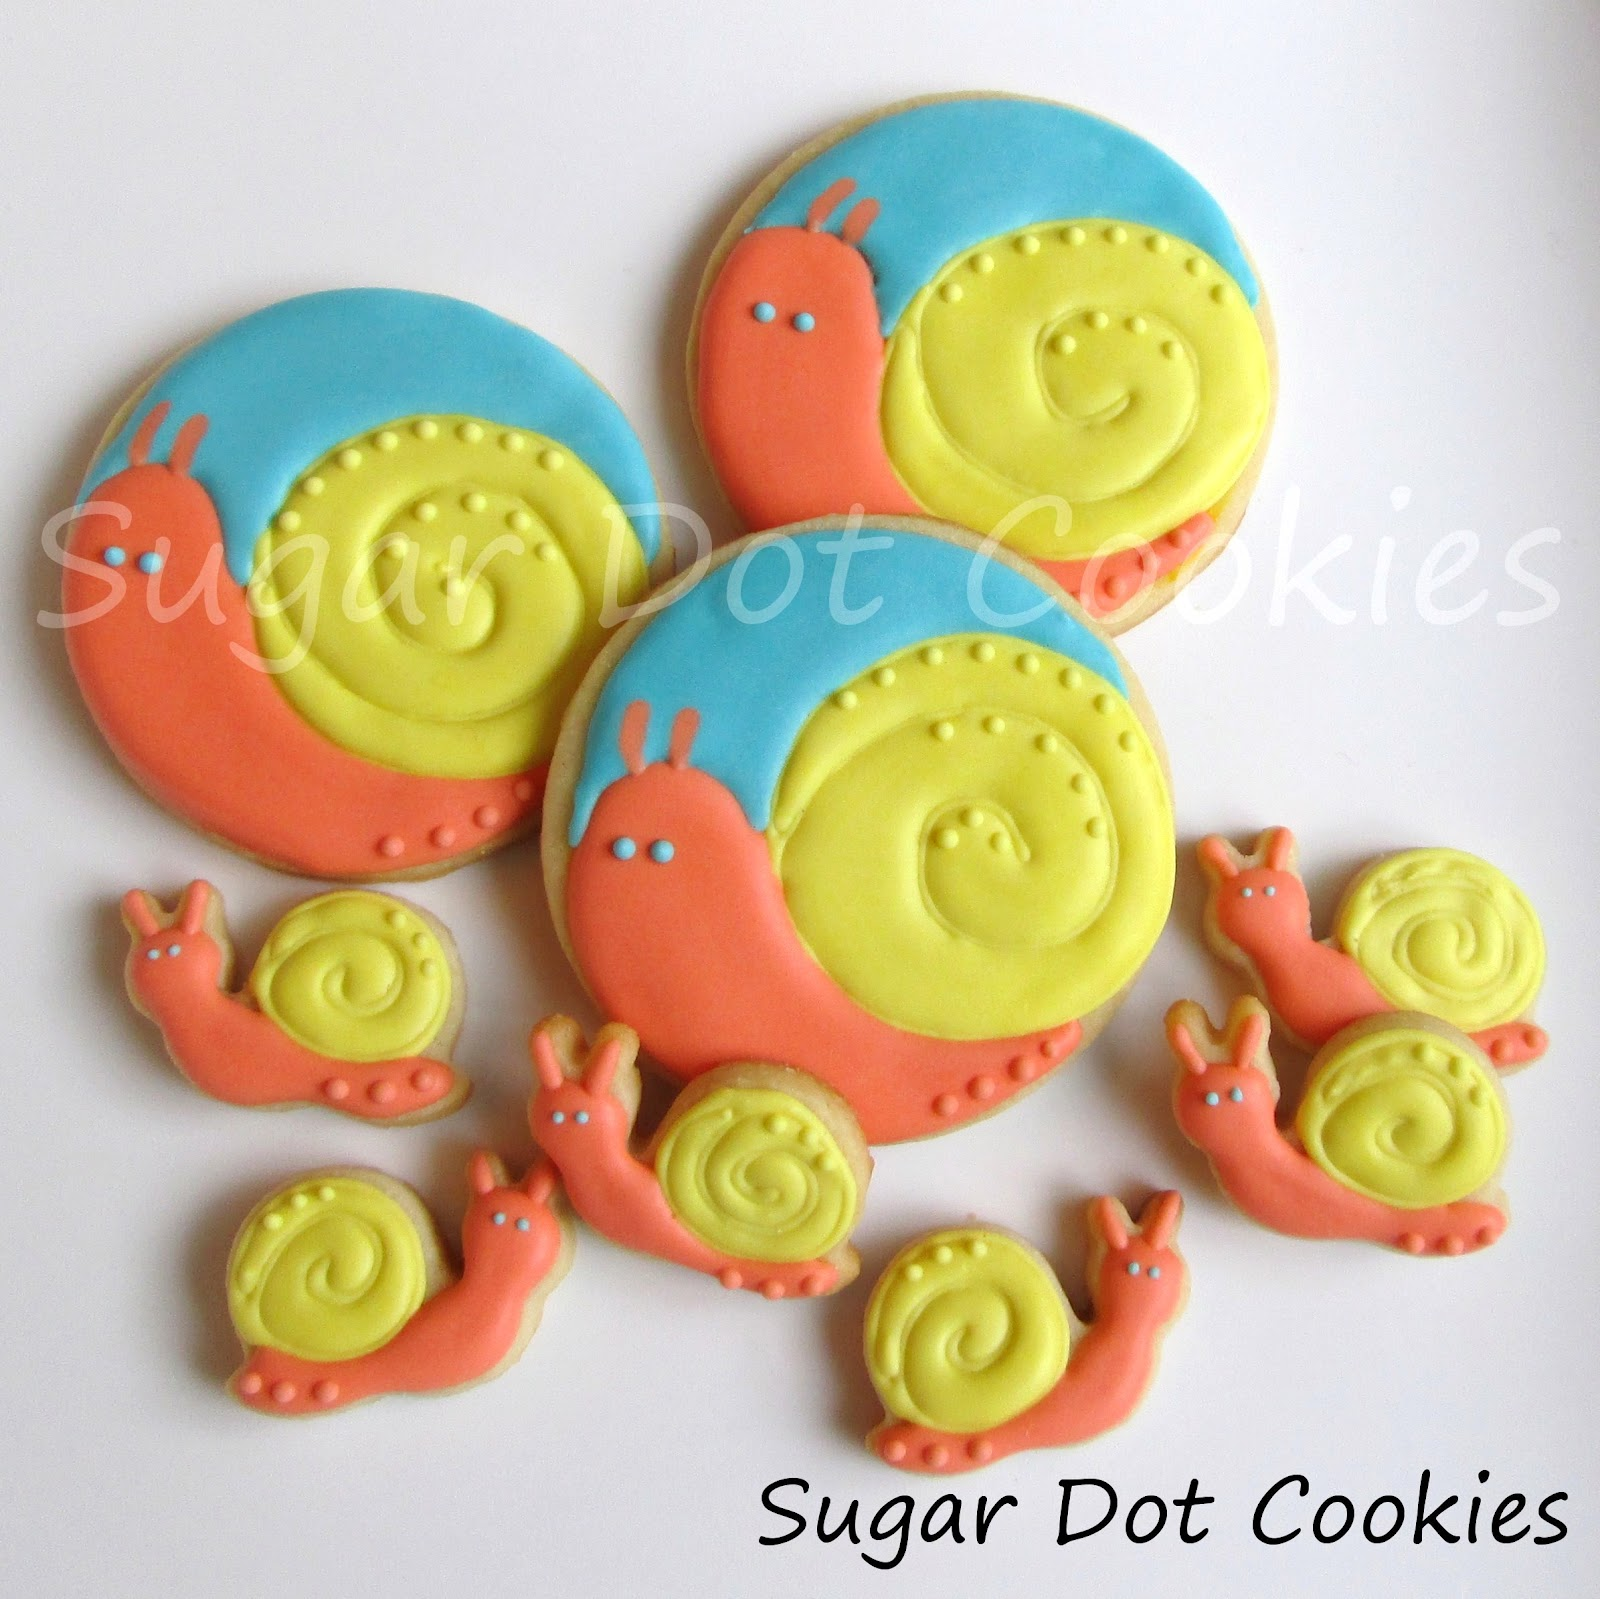 Snail Sugar Cookies with Royal Icing - Tutorial